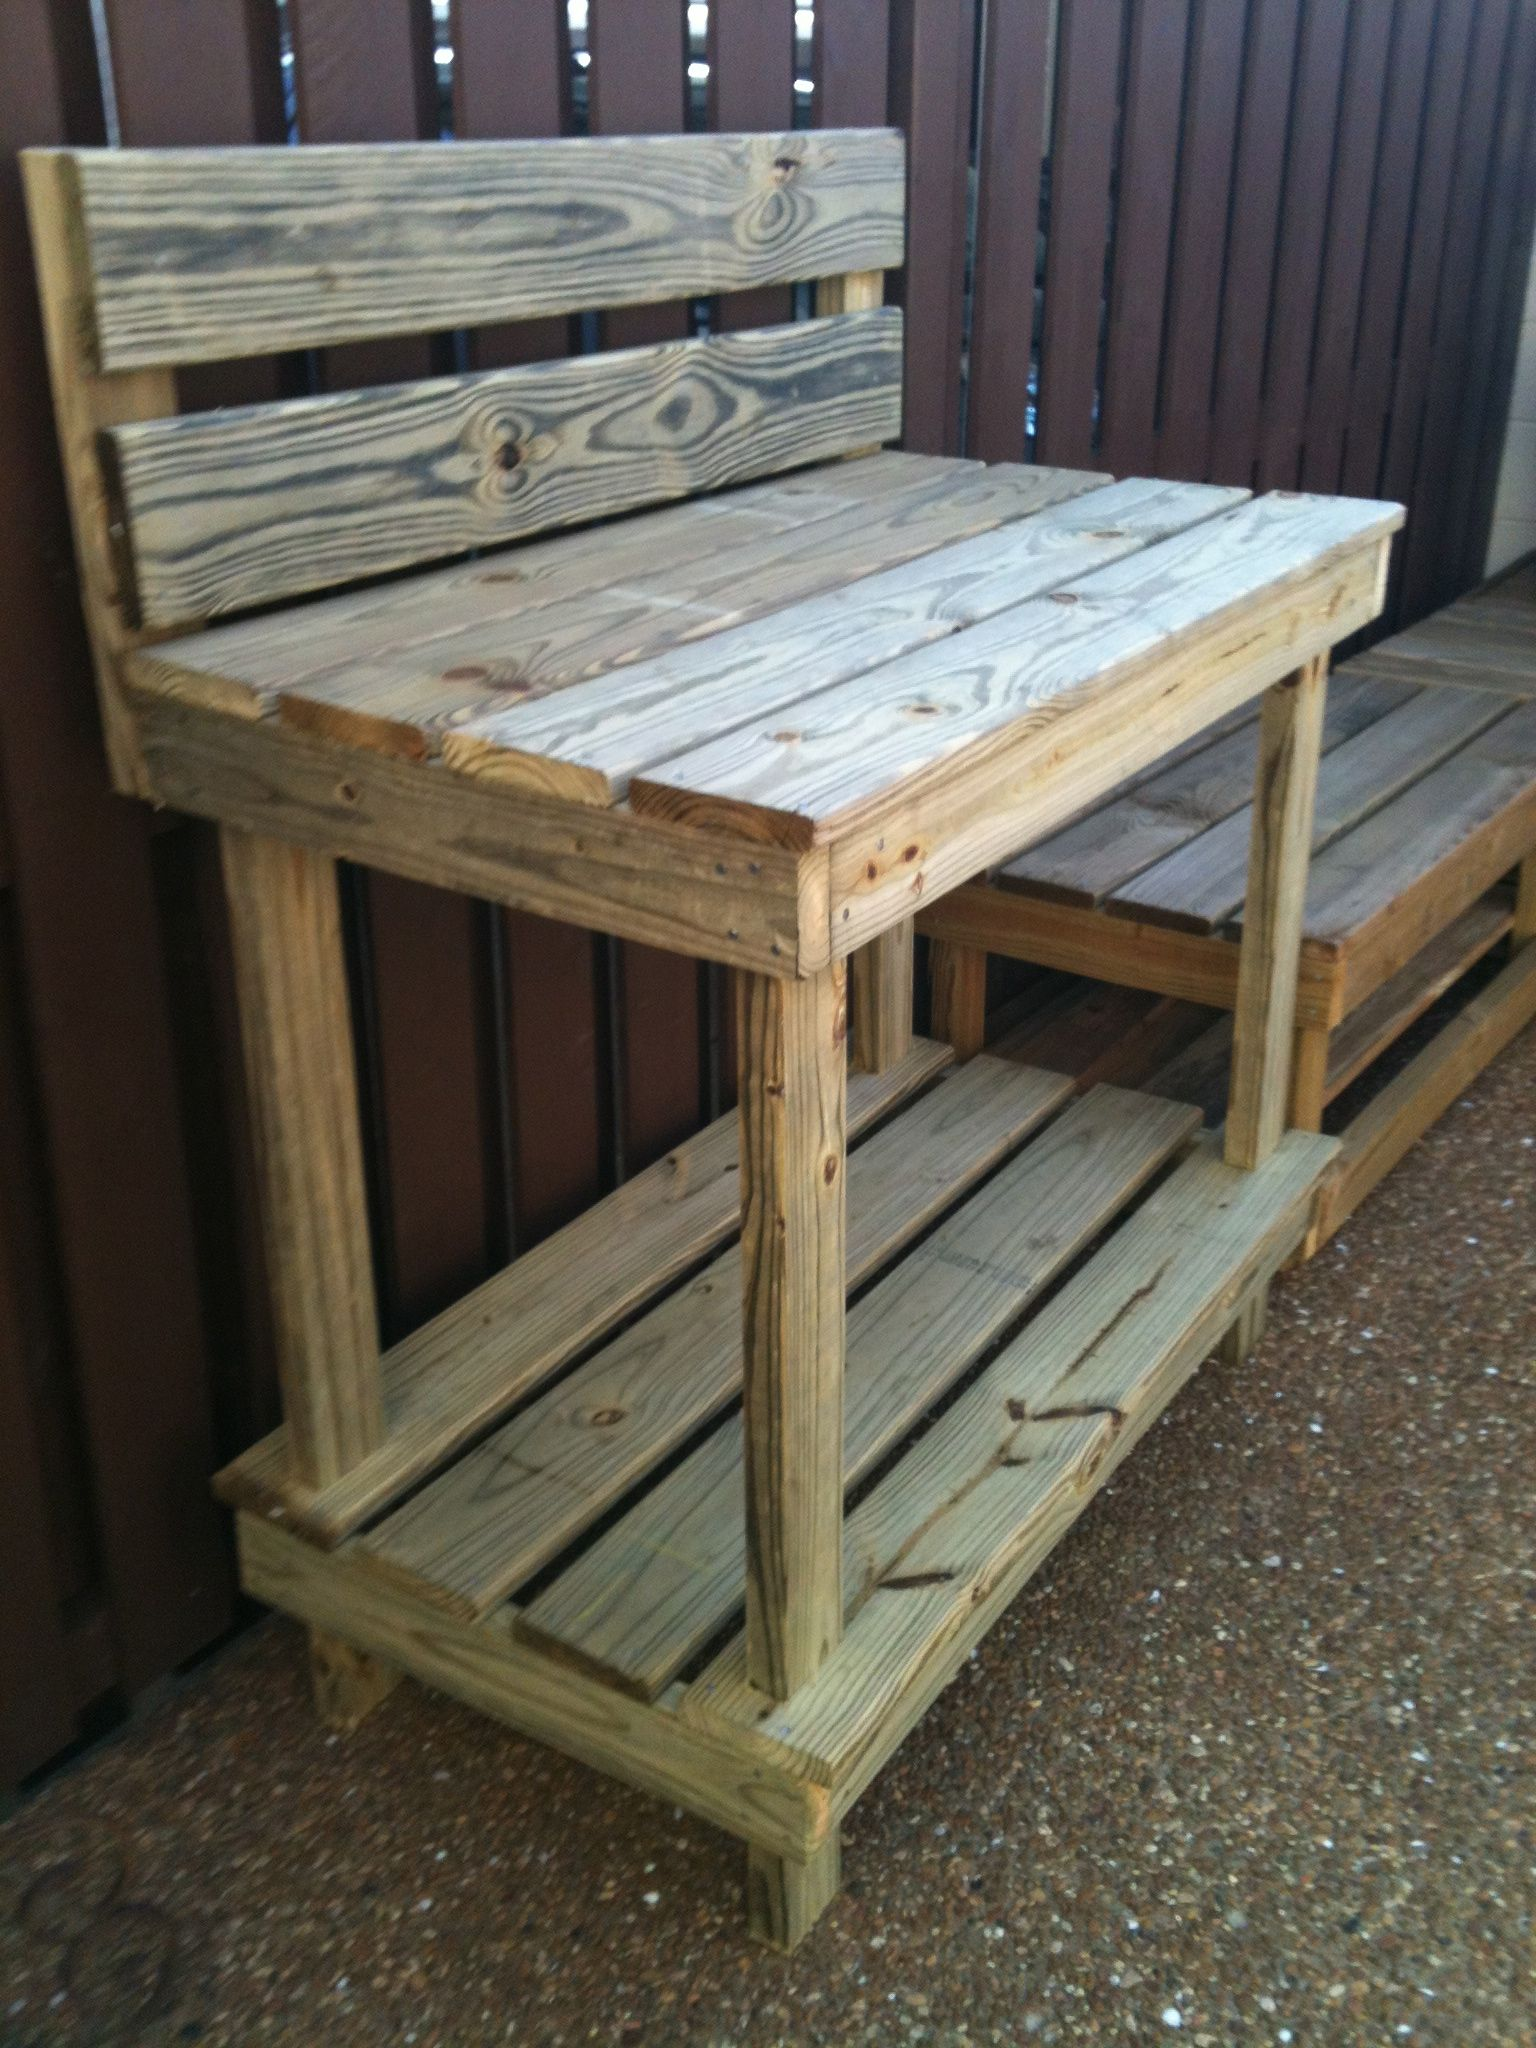 Garden Work Bench With High Back.